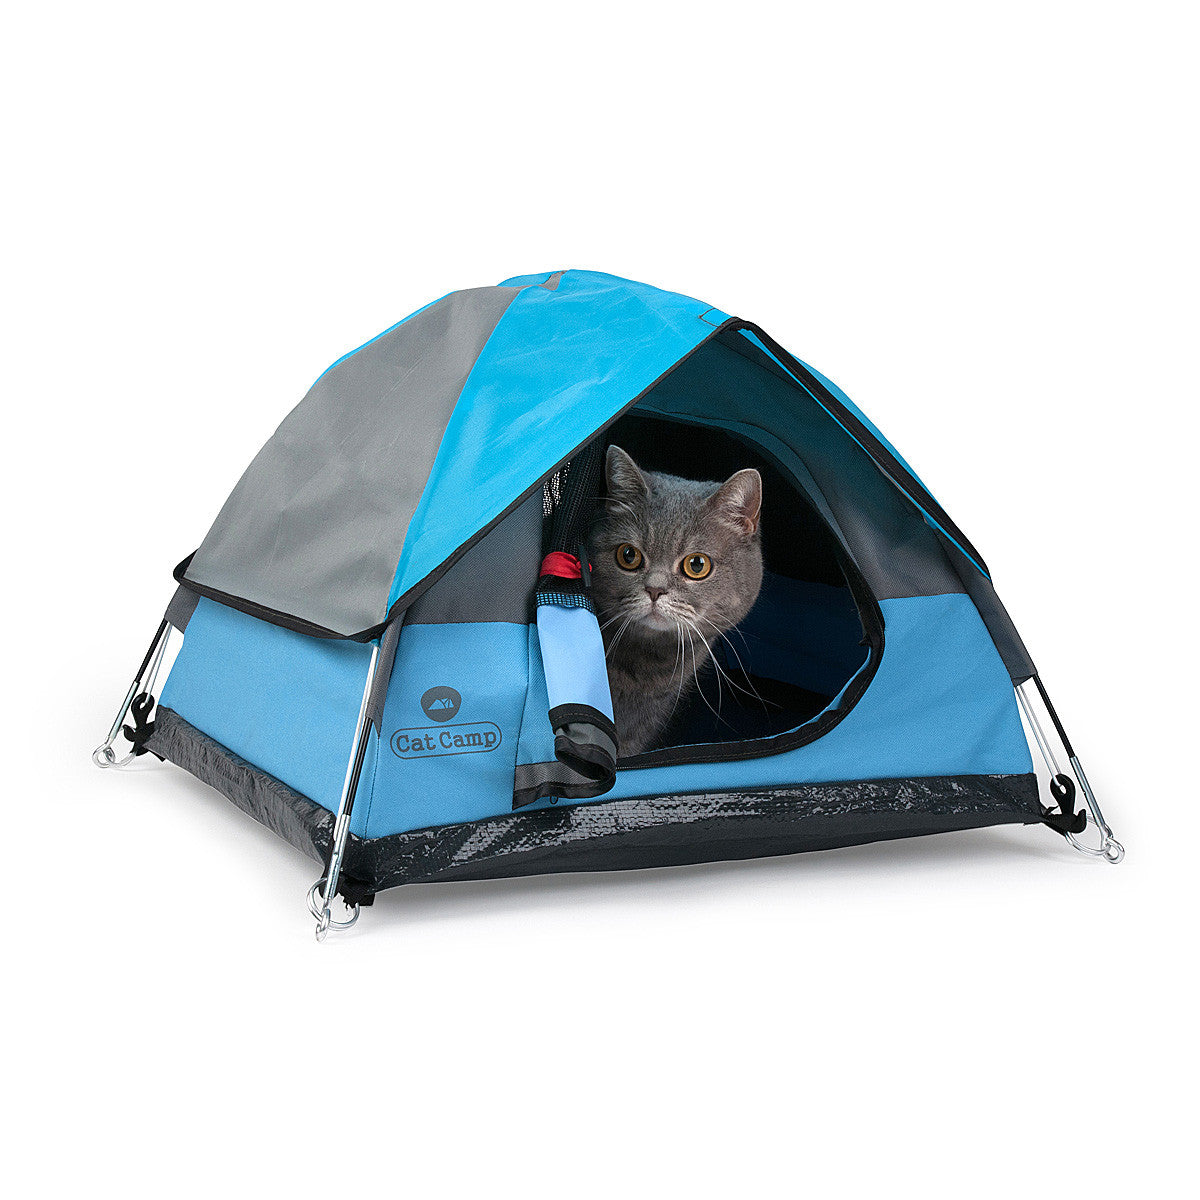 Cat Camp - Tiny tents for cats | Cat Camp - The Mini Display Tents